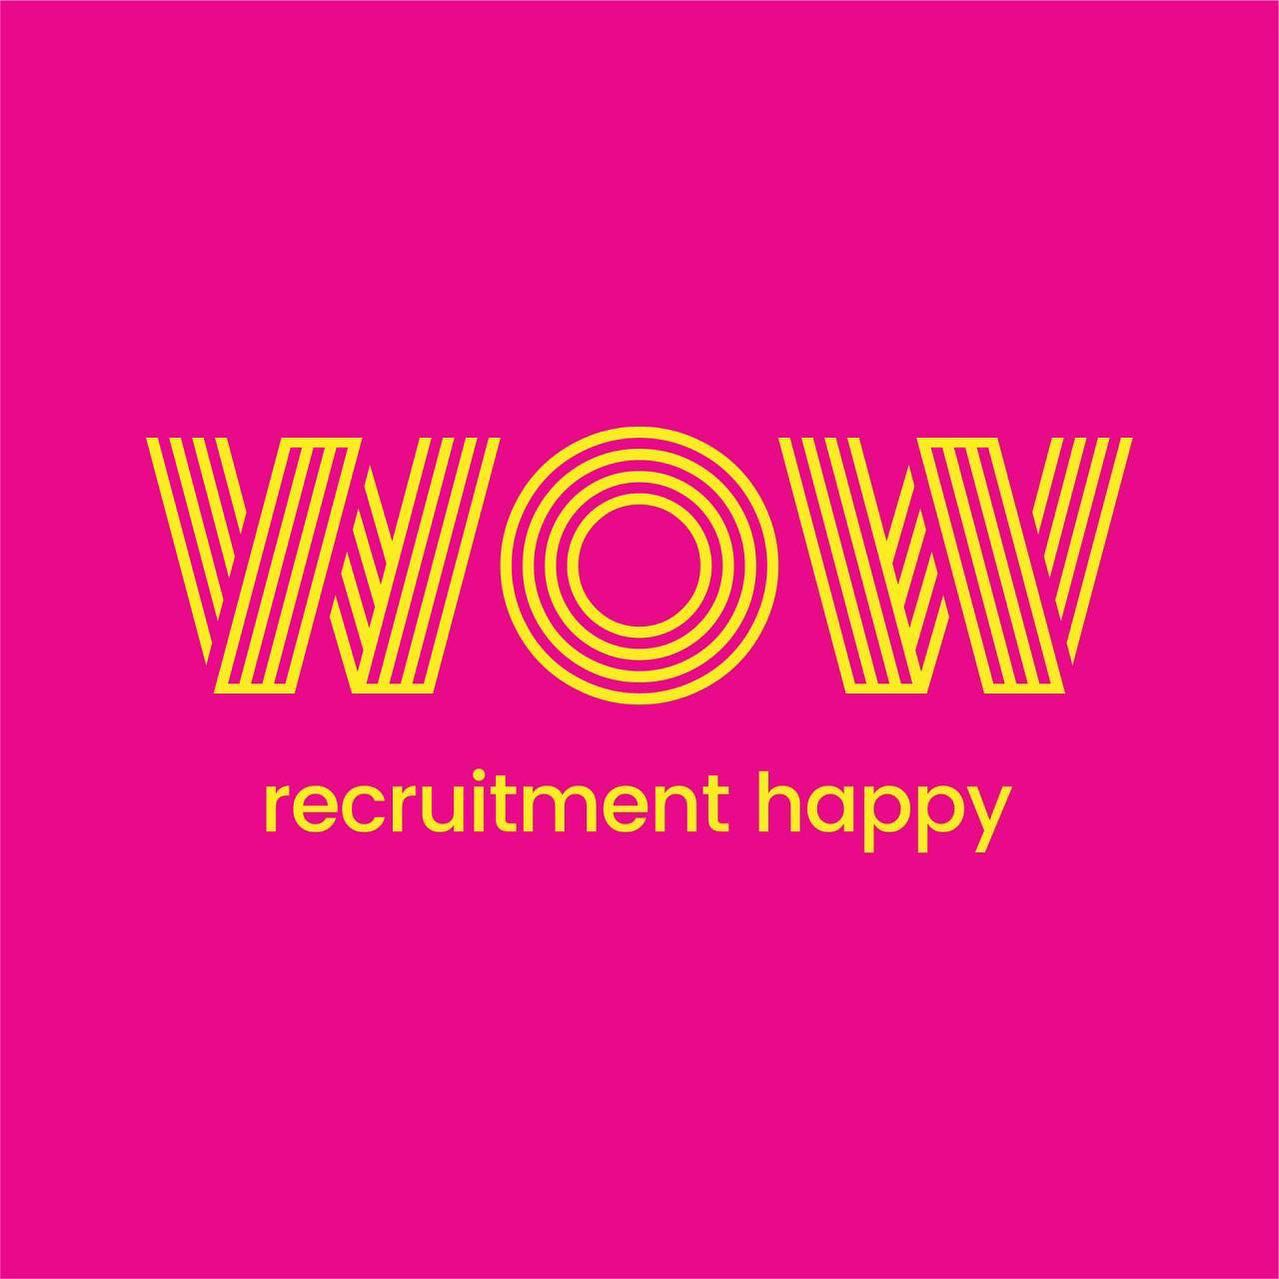 We're not your average recruitment firm at WOW Recruitment ... Everything we do is about making everyone happier about recruitment. Whether that be clients, candidates or our own consultants the way we do what we do just makes them all happy. And that's a bit different to what usually happens. So, it's important to us that we don't look like everyone else. We have taken the time to create a unique brand and look and feel that helps ensure we always stand out... Completely new website and new brand launch coming soon!! #recruitmenthappy #workhappy #hiregreat #dowhatyoulove